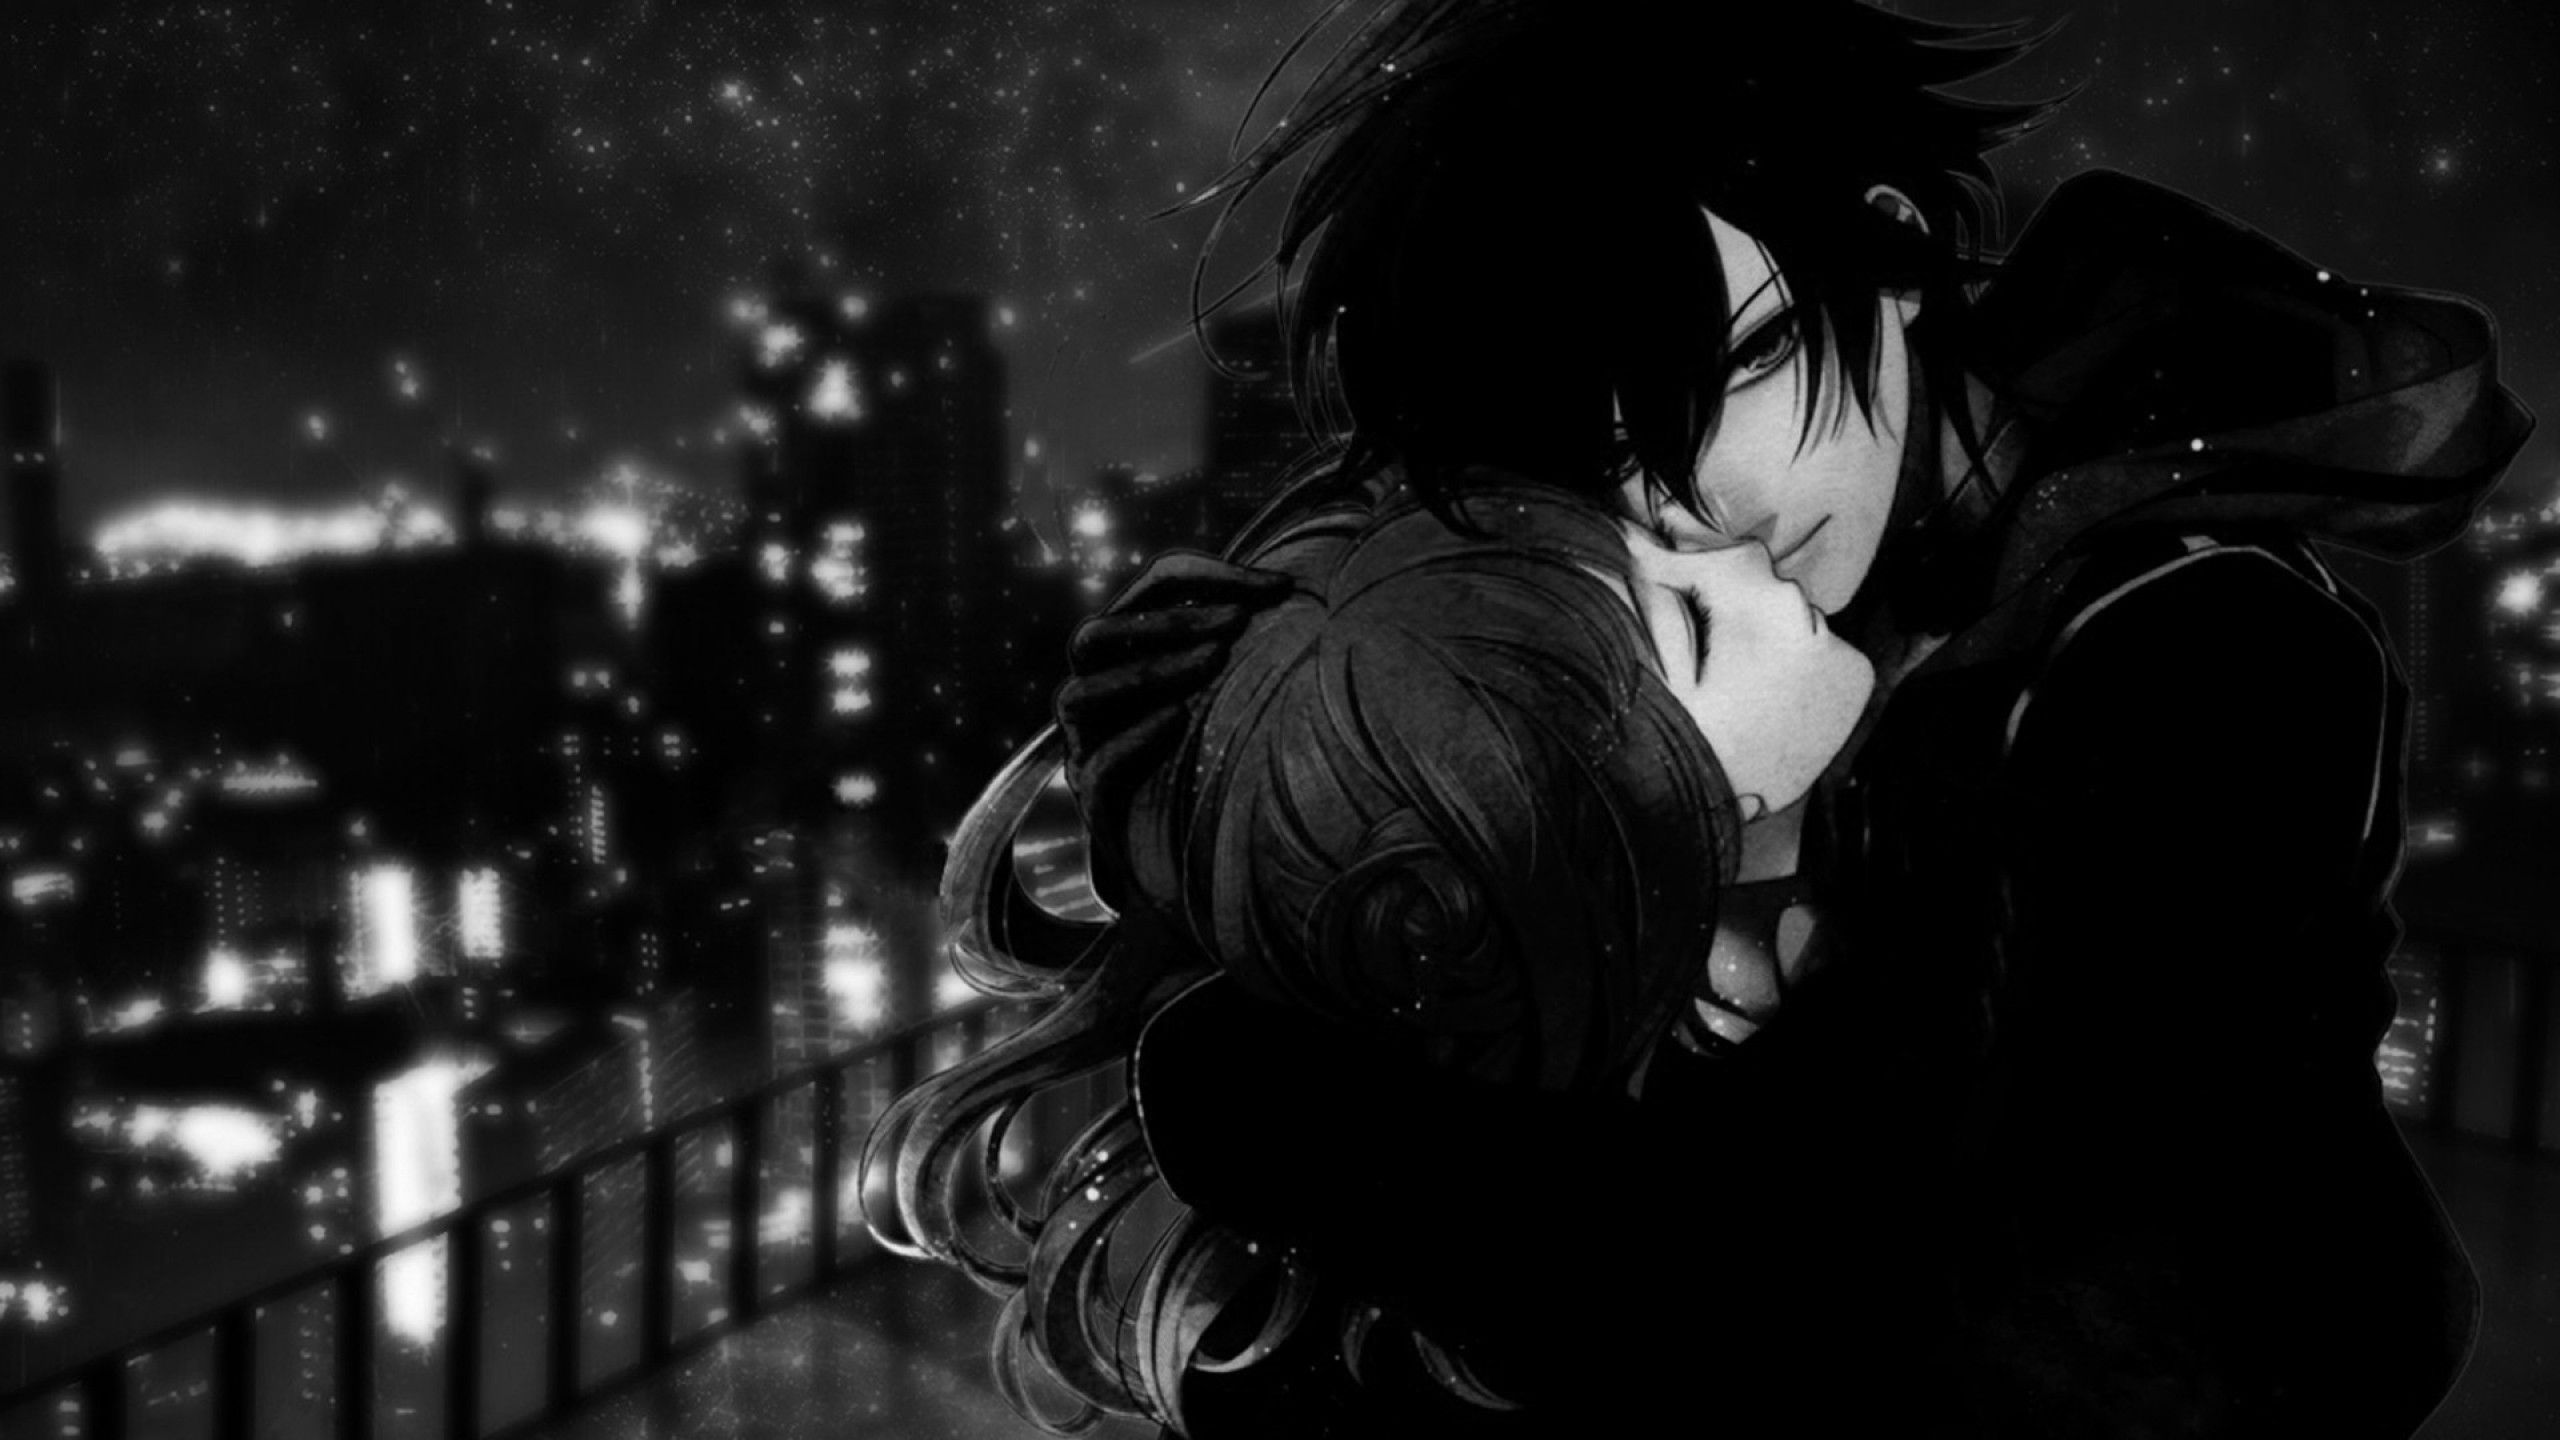 Cute Dark Anime Couple Wallpapers On Wallpaperdog Free download new latest hd romantic couple love black and white free wallpaper wallpaper under love heart category for high quality and high definition wide screen computer, pc and laptop desktop background photos, images and pictures. cute dark anime couple wallpapers on